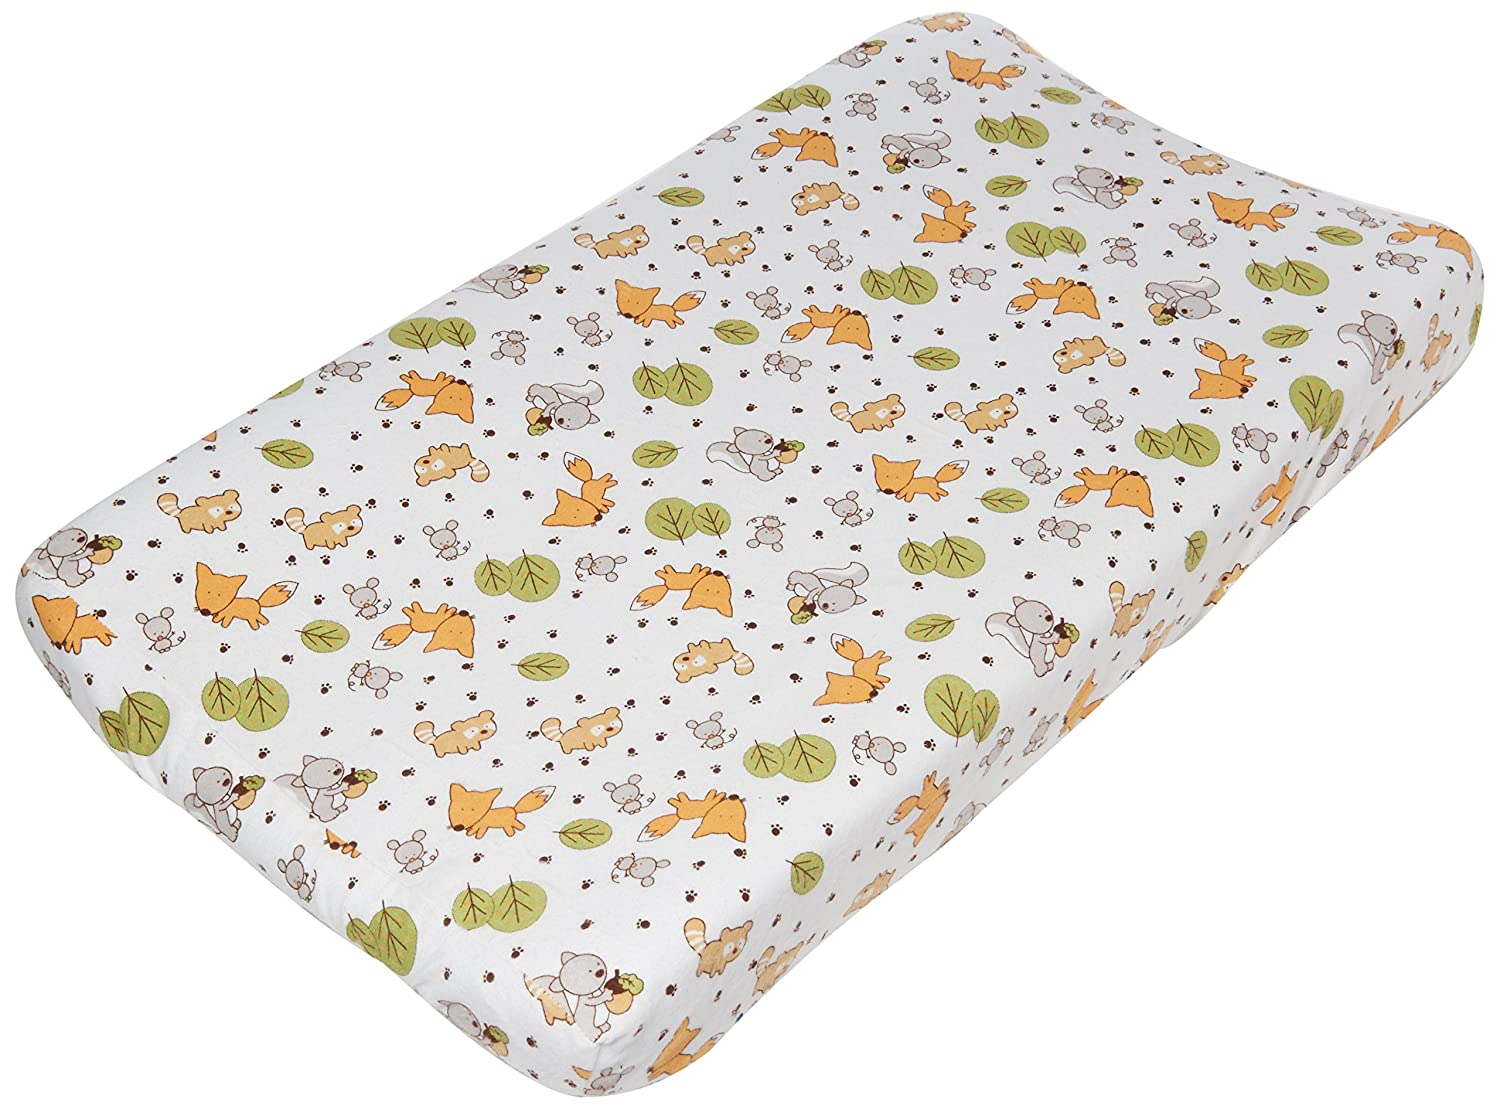 Trend Lab Friendly Forest Deluxe Flannel Changing Pad Cover 101381